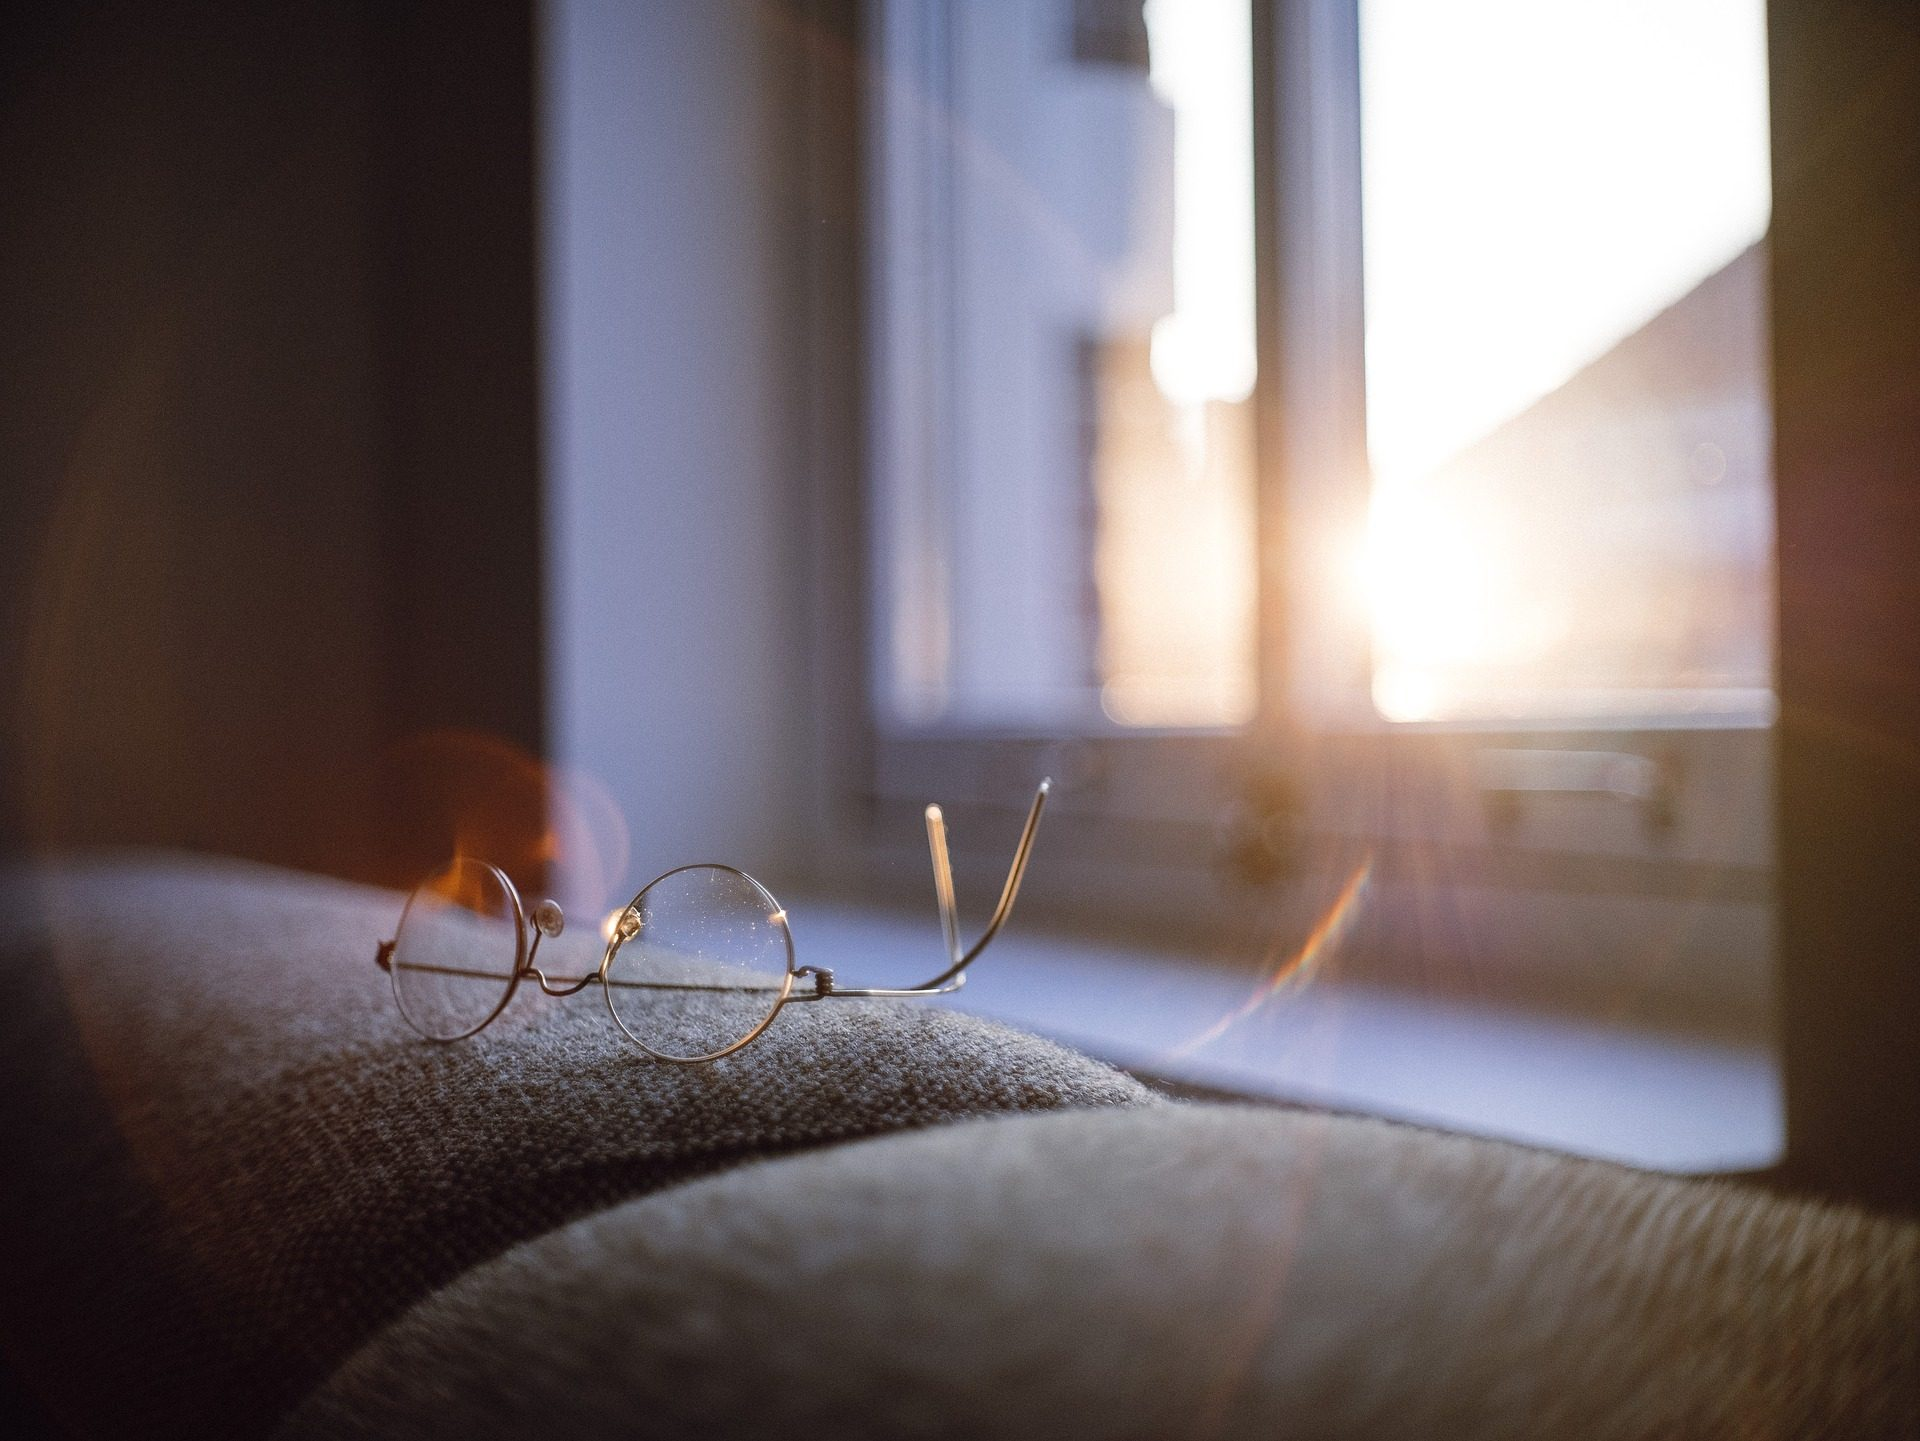 Sonnenbrille, Sofa, Fenster, Dawn, Sonne - Wallpaper HD - Prof.-falken.com